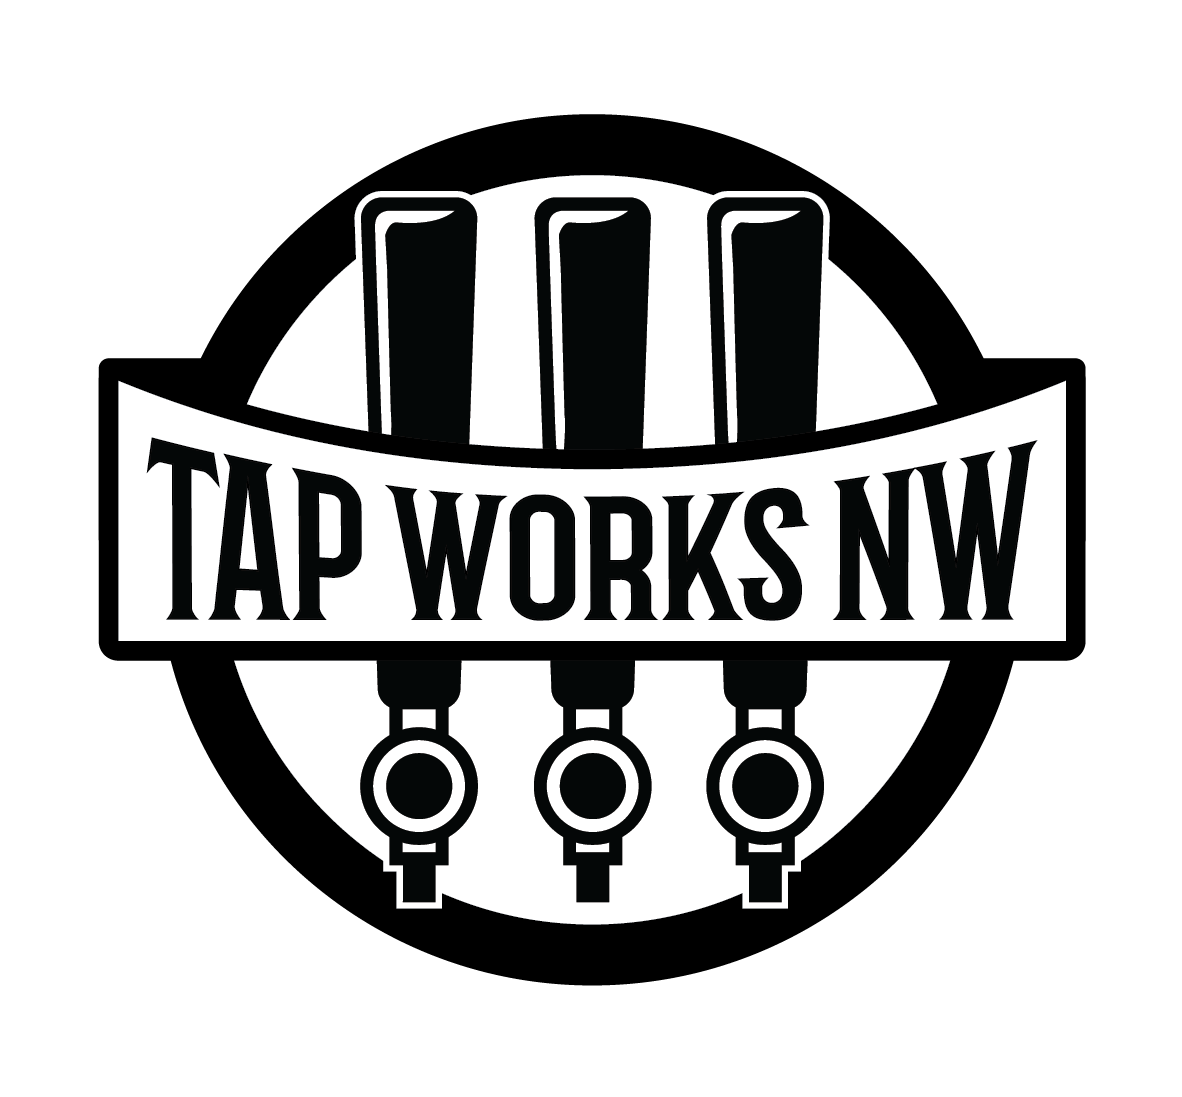 Tap Works NW